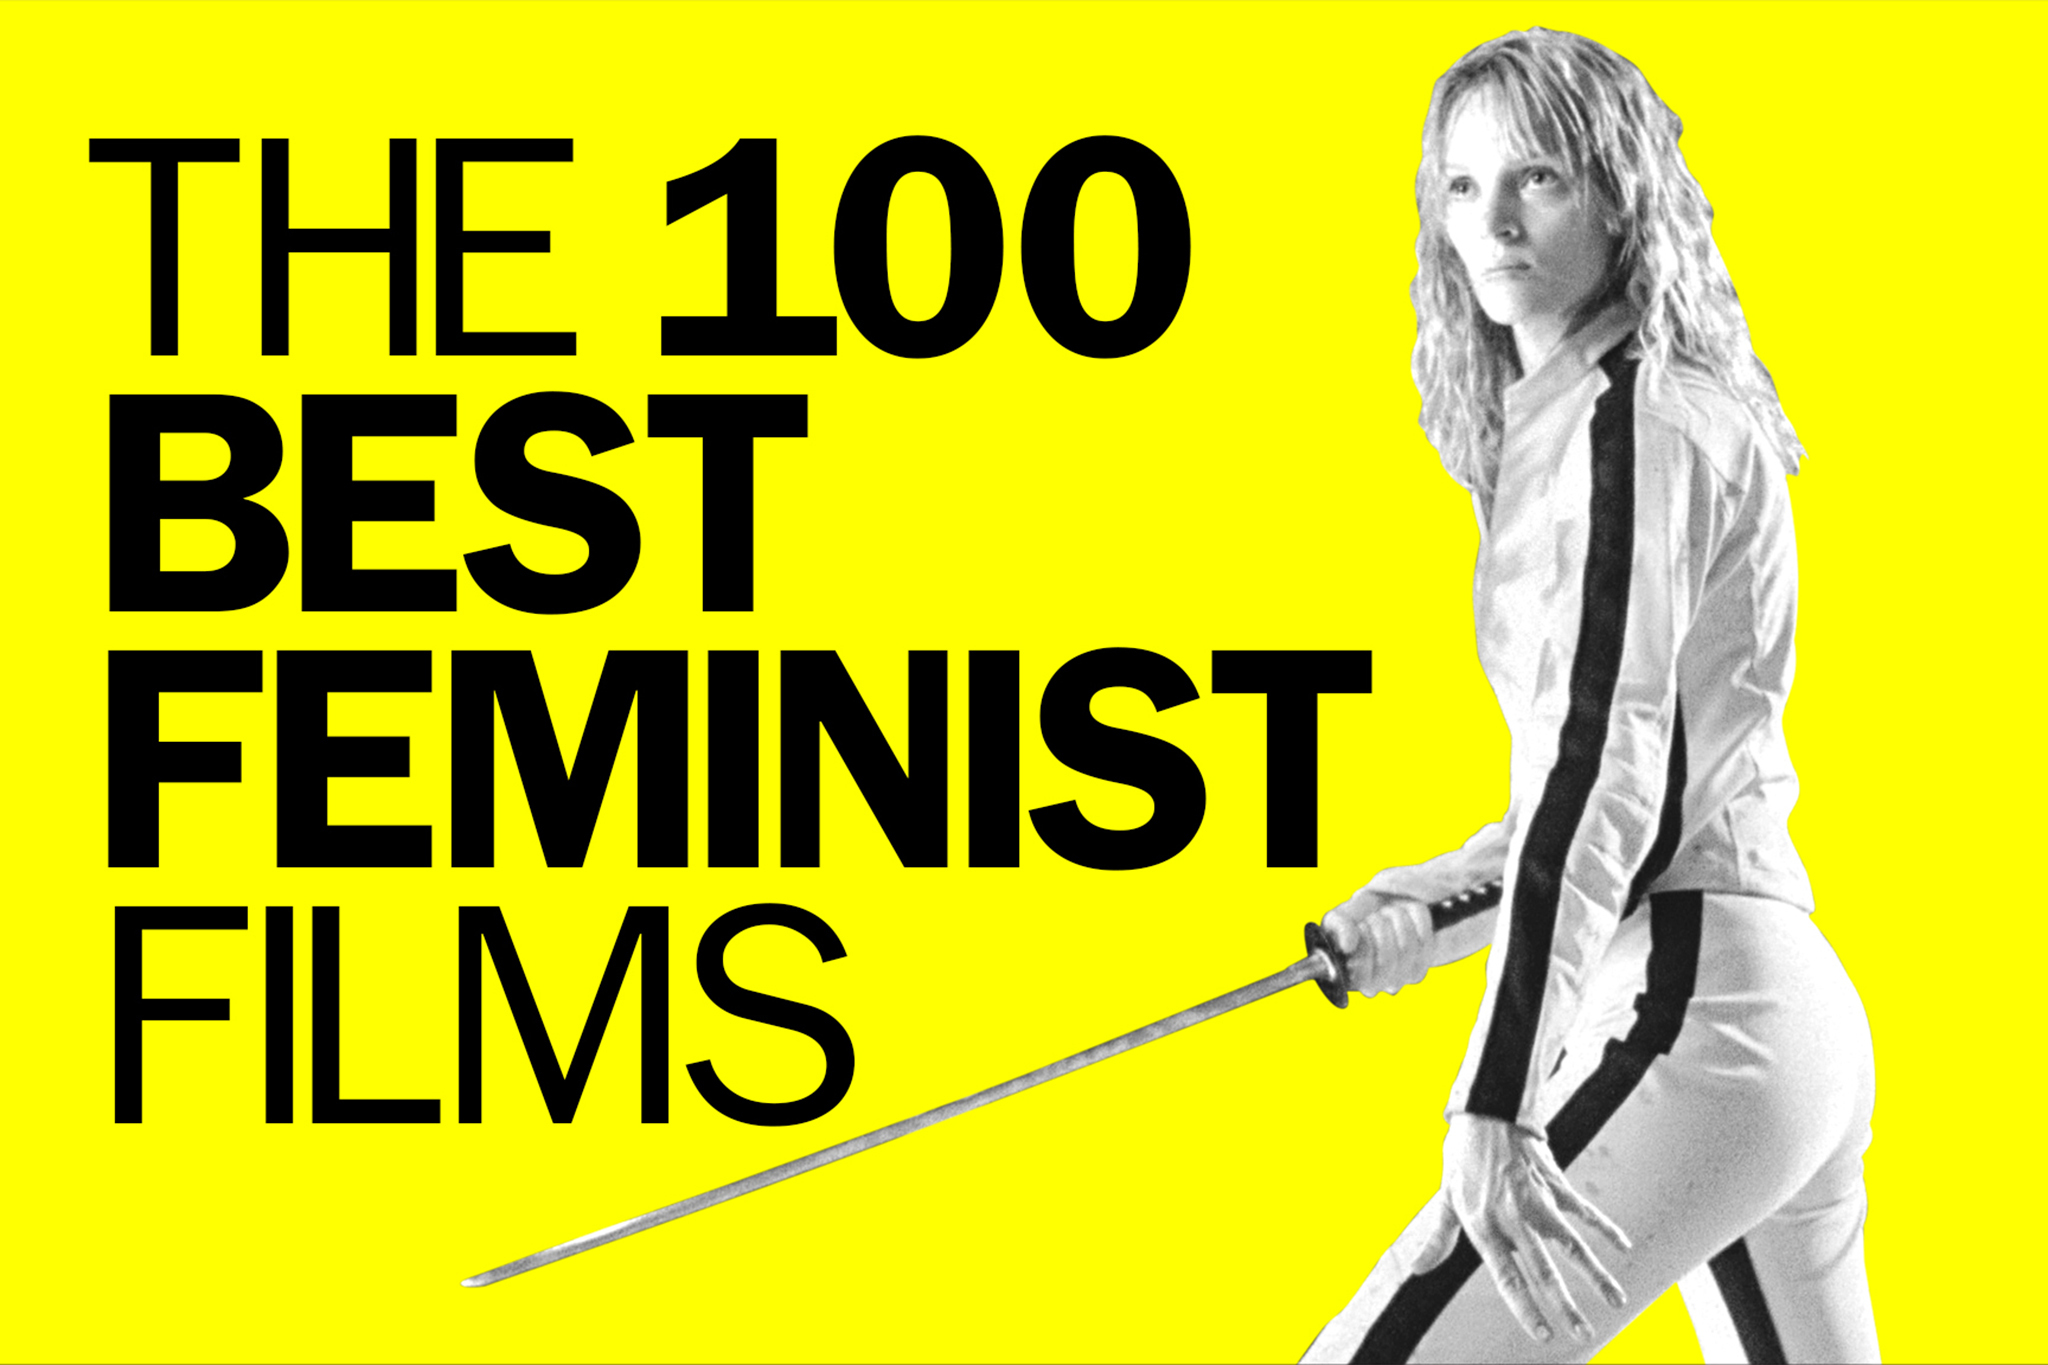 The 100 best feminist films of all time